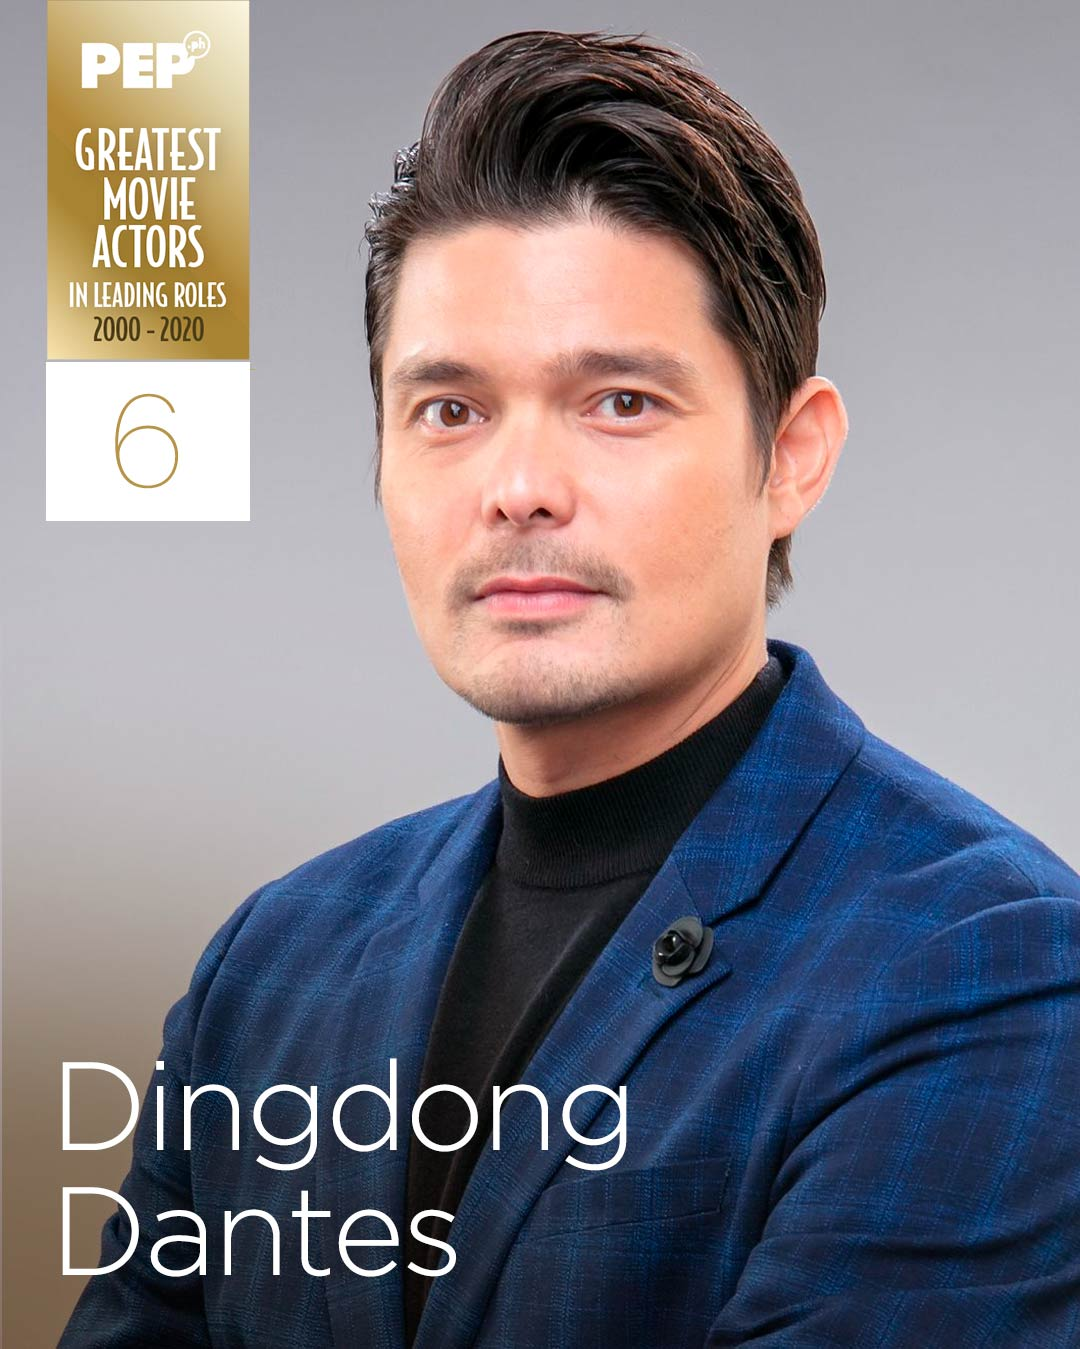 Dingdong Dantes, 15 Greatest Movie Actors in Leading Roles